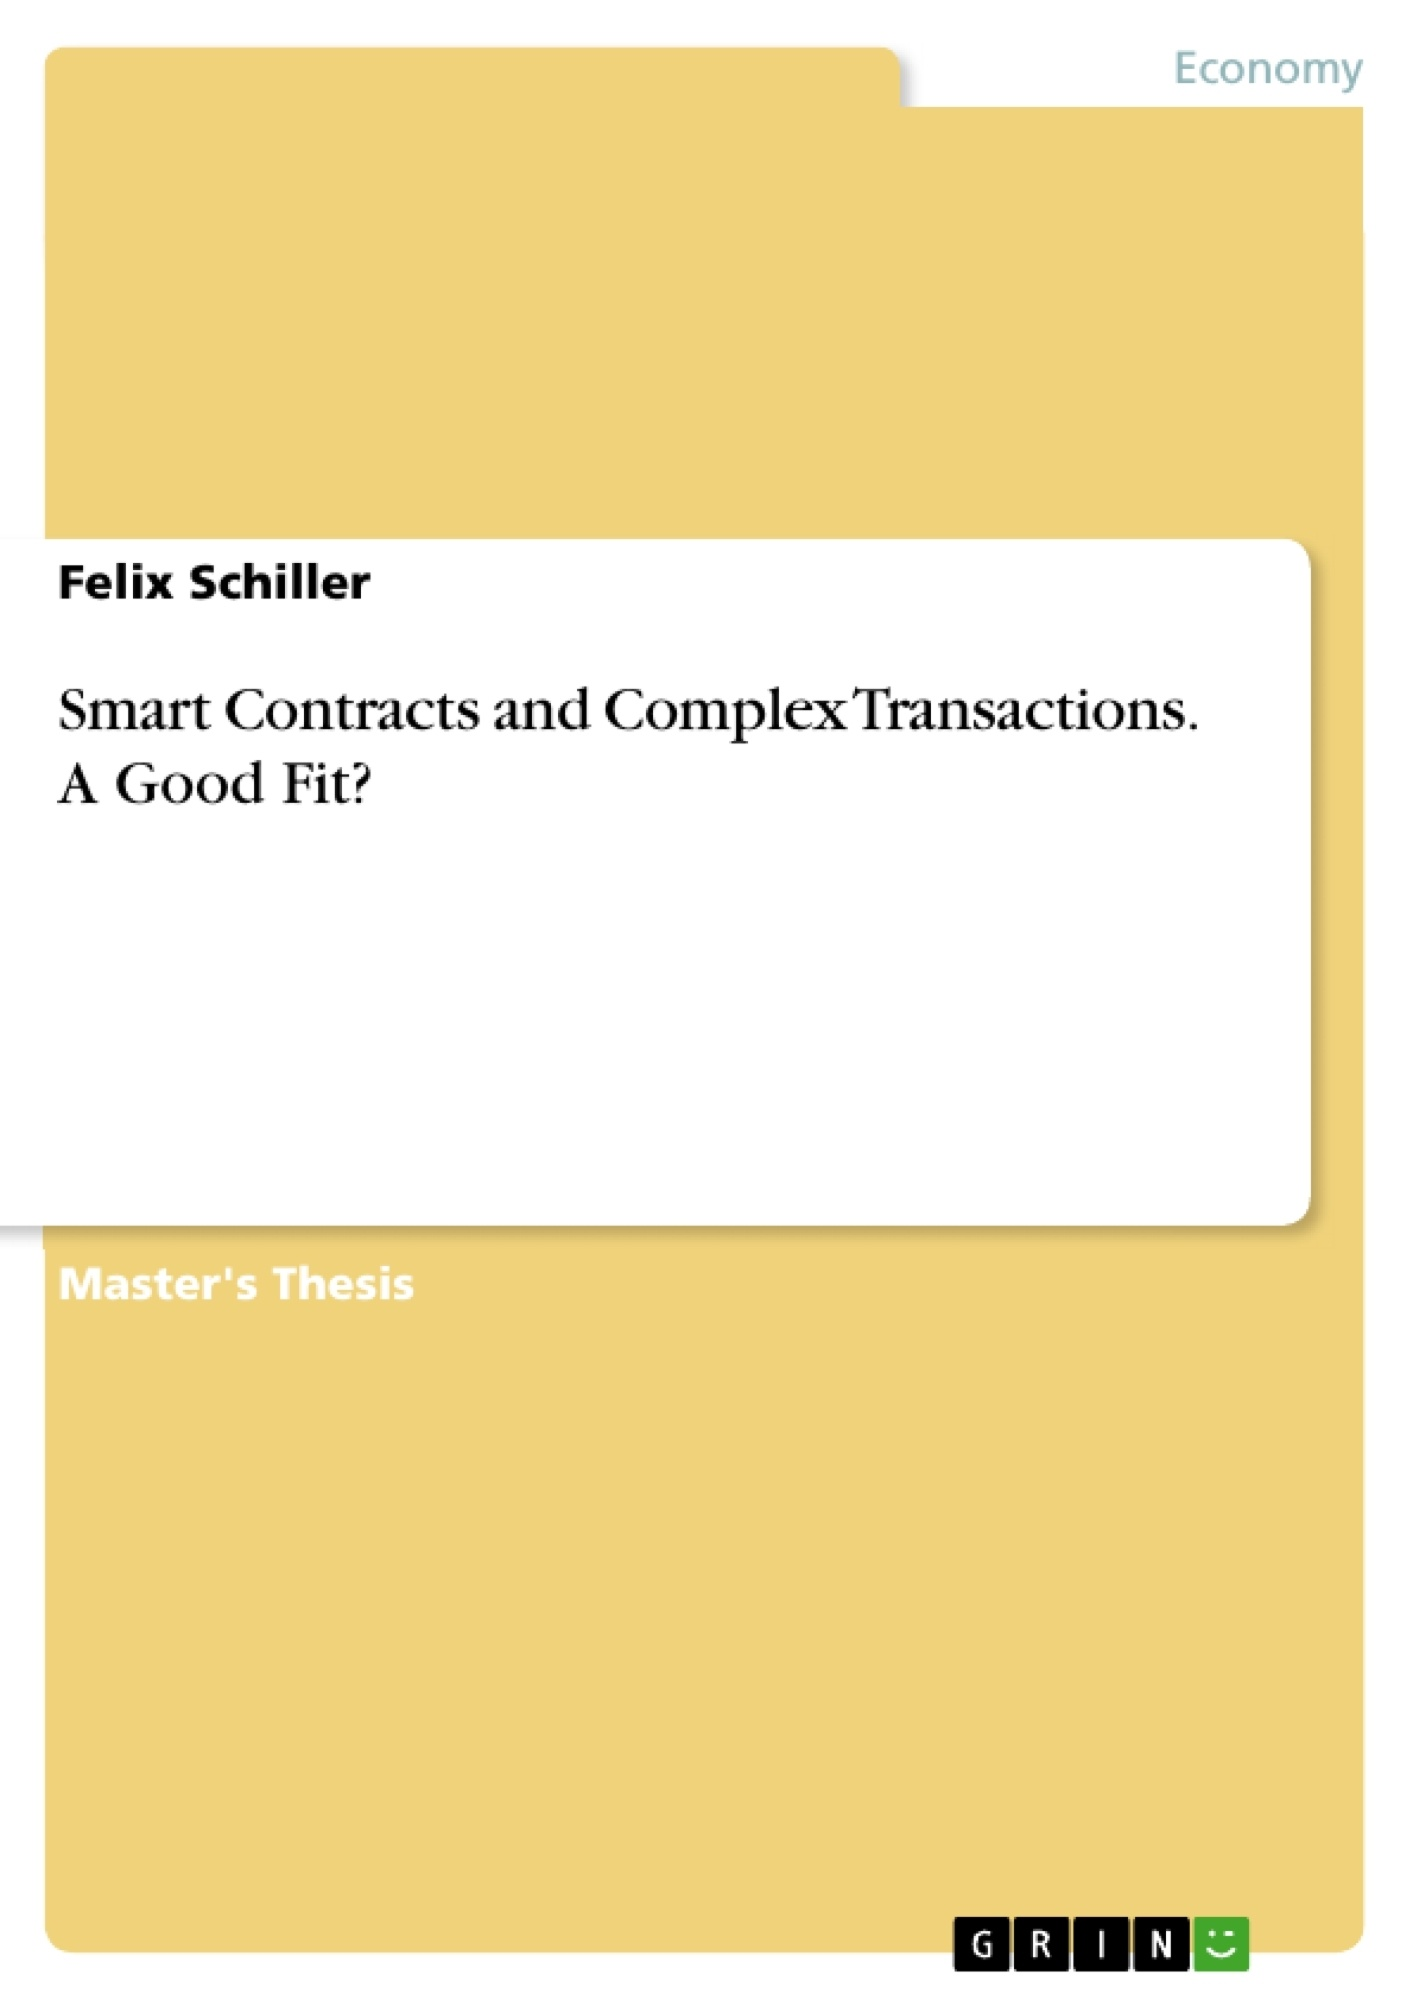 Title: Smart Contracts and Complex Transactions. A Good Fit?